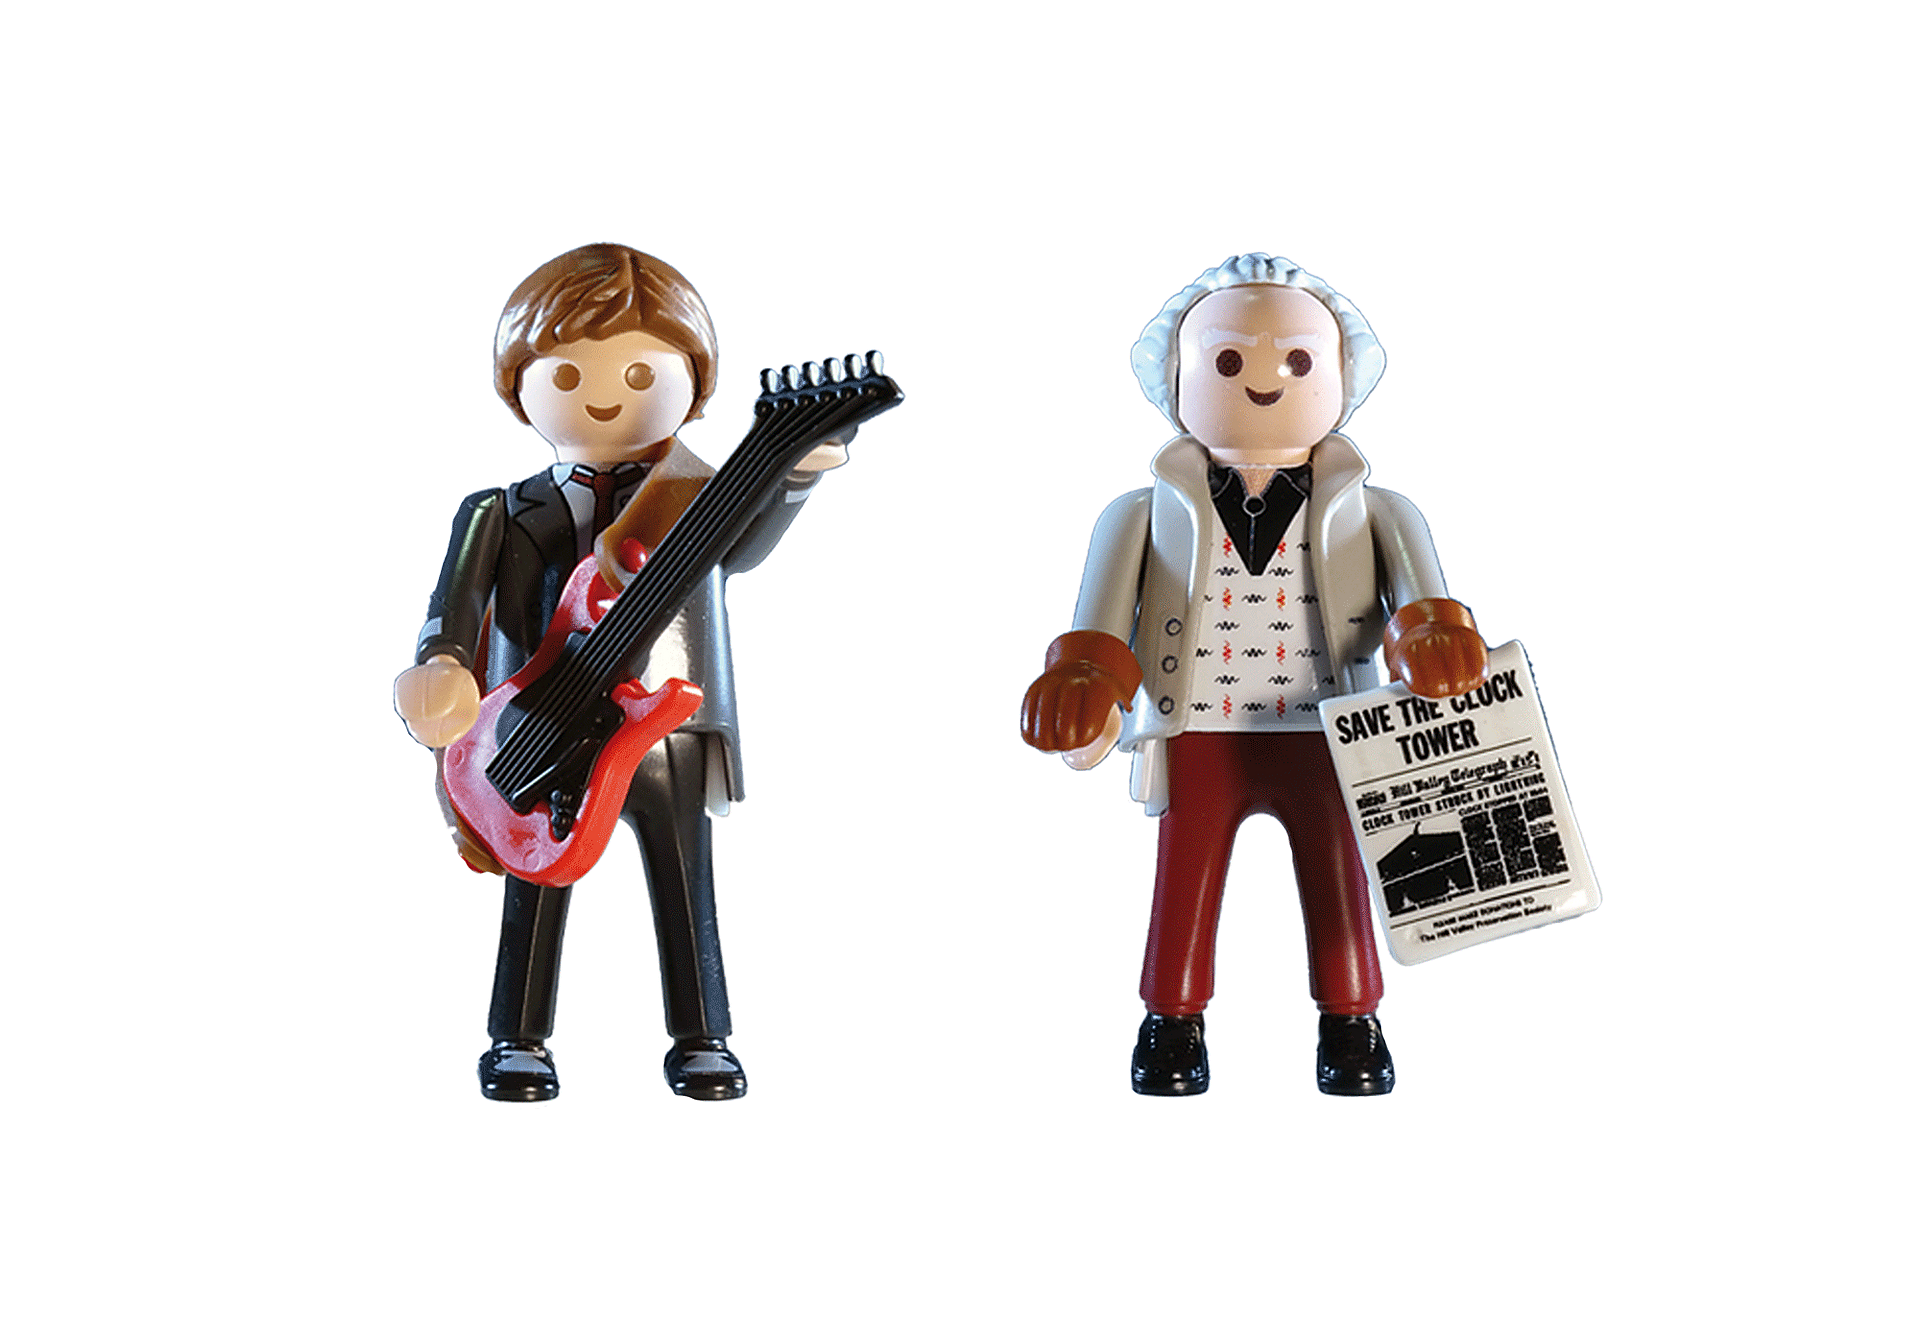 70459 Back to the Future Marty Mcfly and Dr. Emmett Brown zoom image3